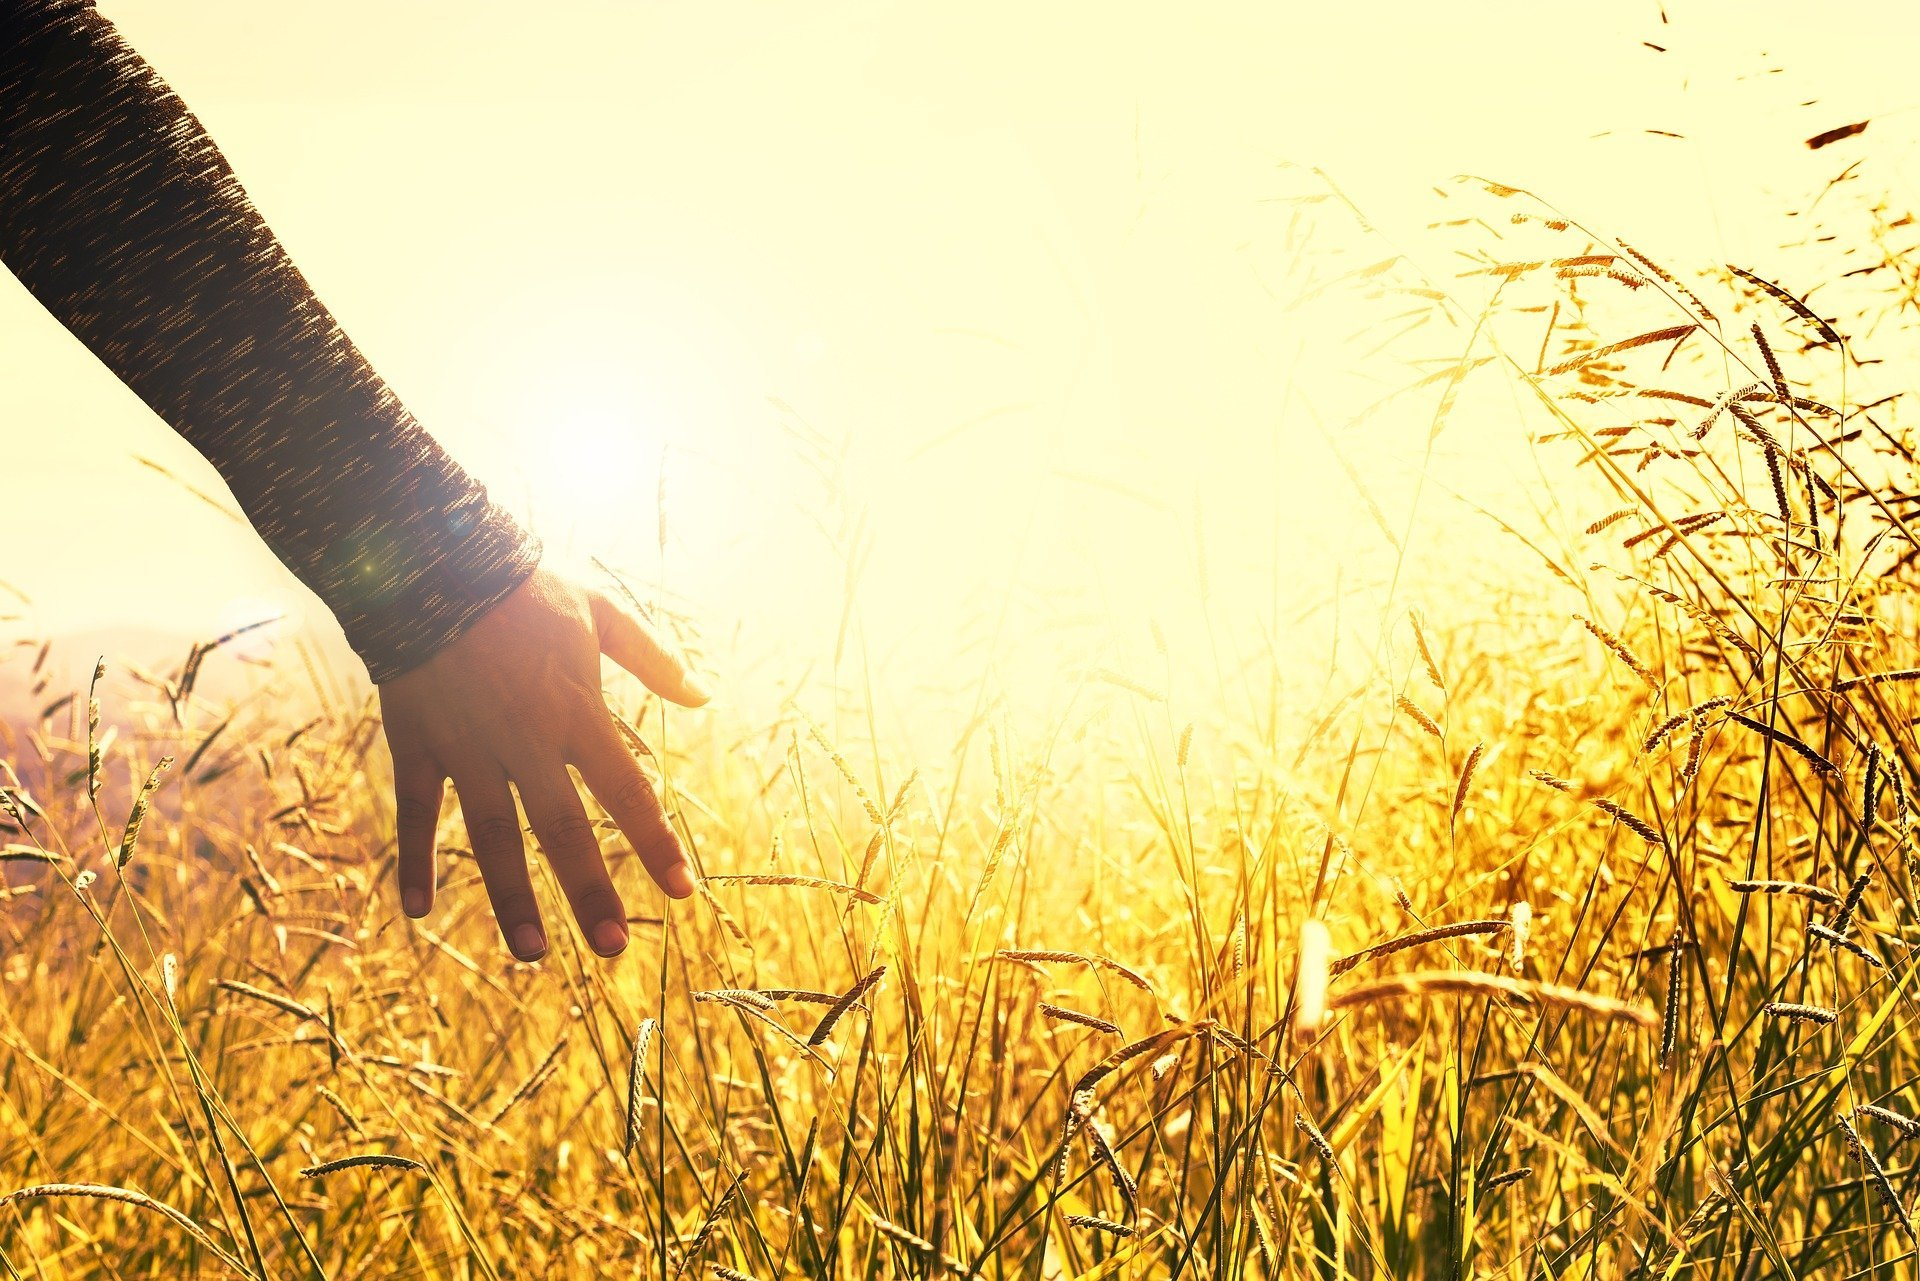 woman's hand touching tall grass in a sunny meadow